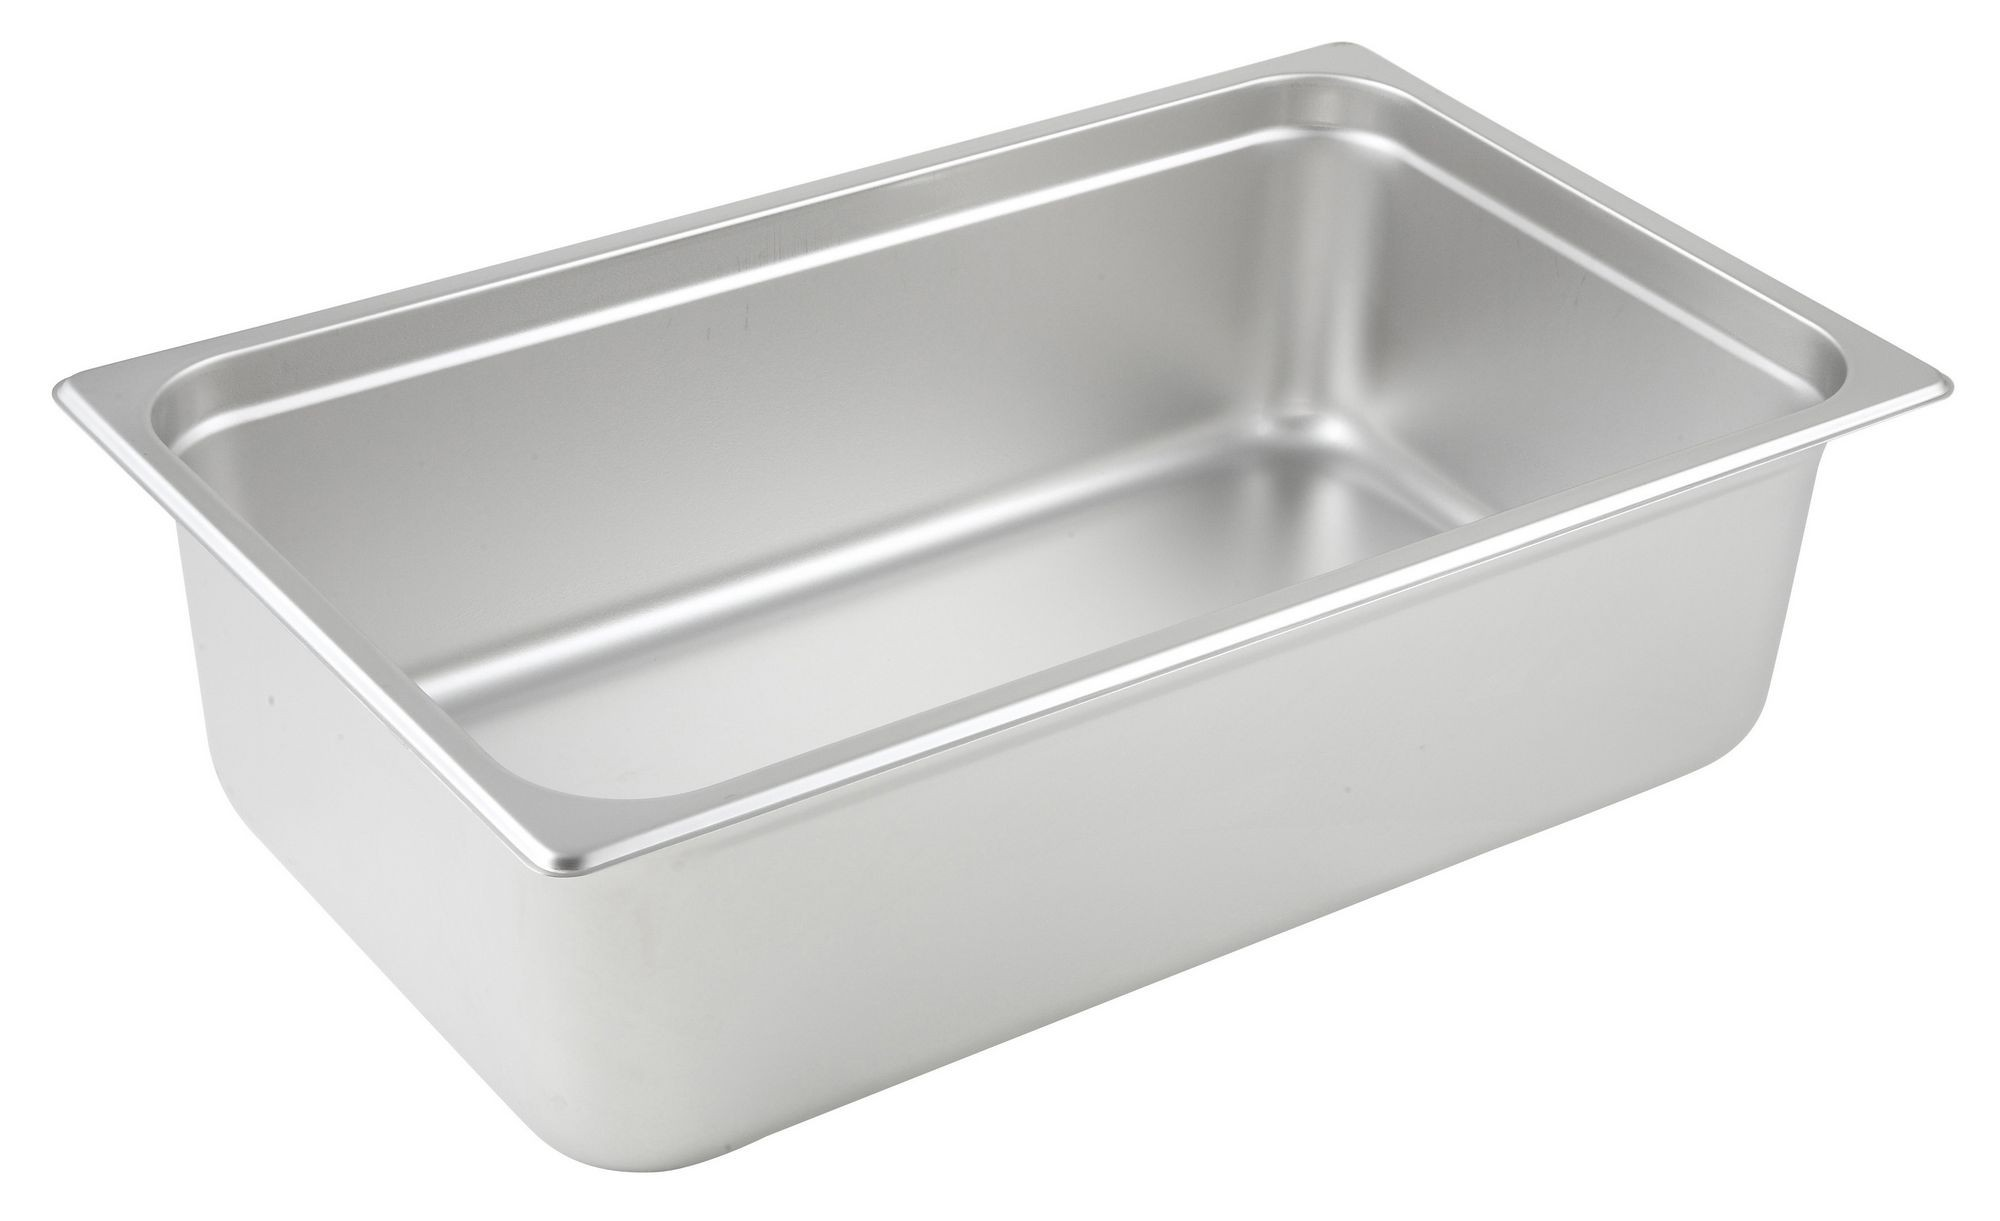 "Winco spjp-106 Full Size Anti-Jam 23 Gauge Steam Table Pan 6"" Deep"